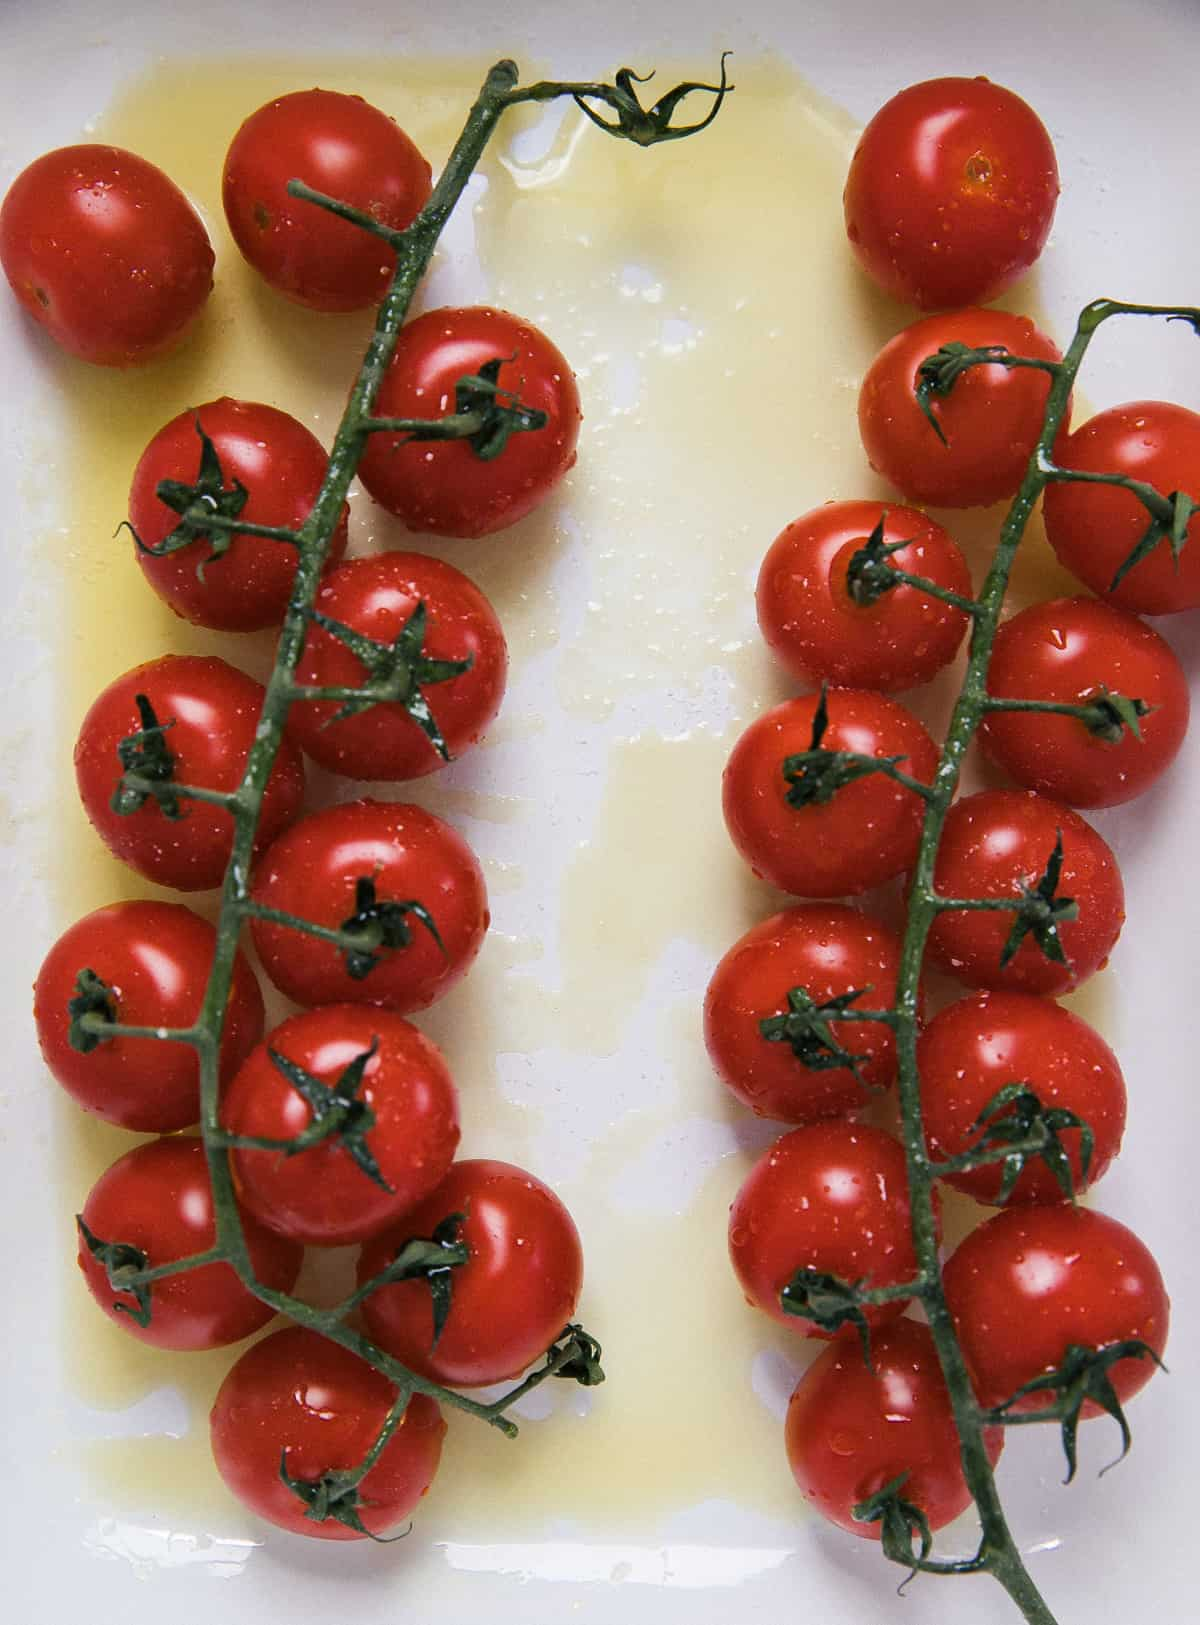 Closeup of tomatoes